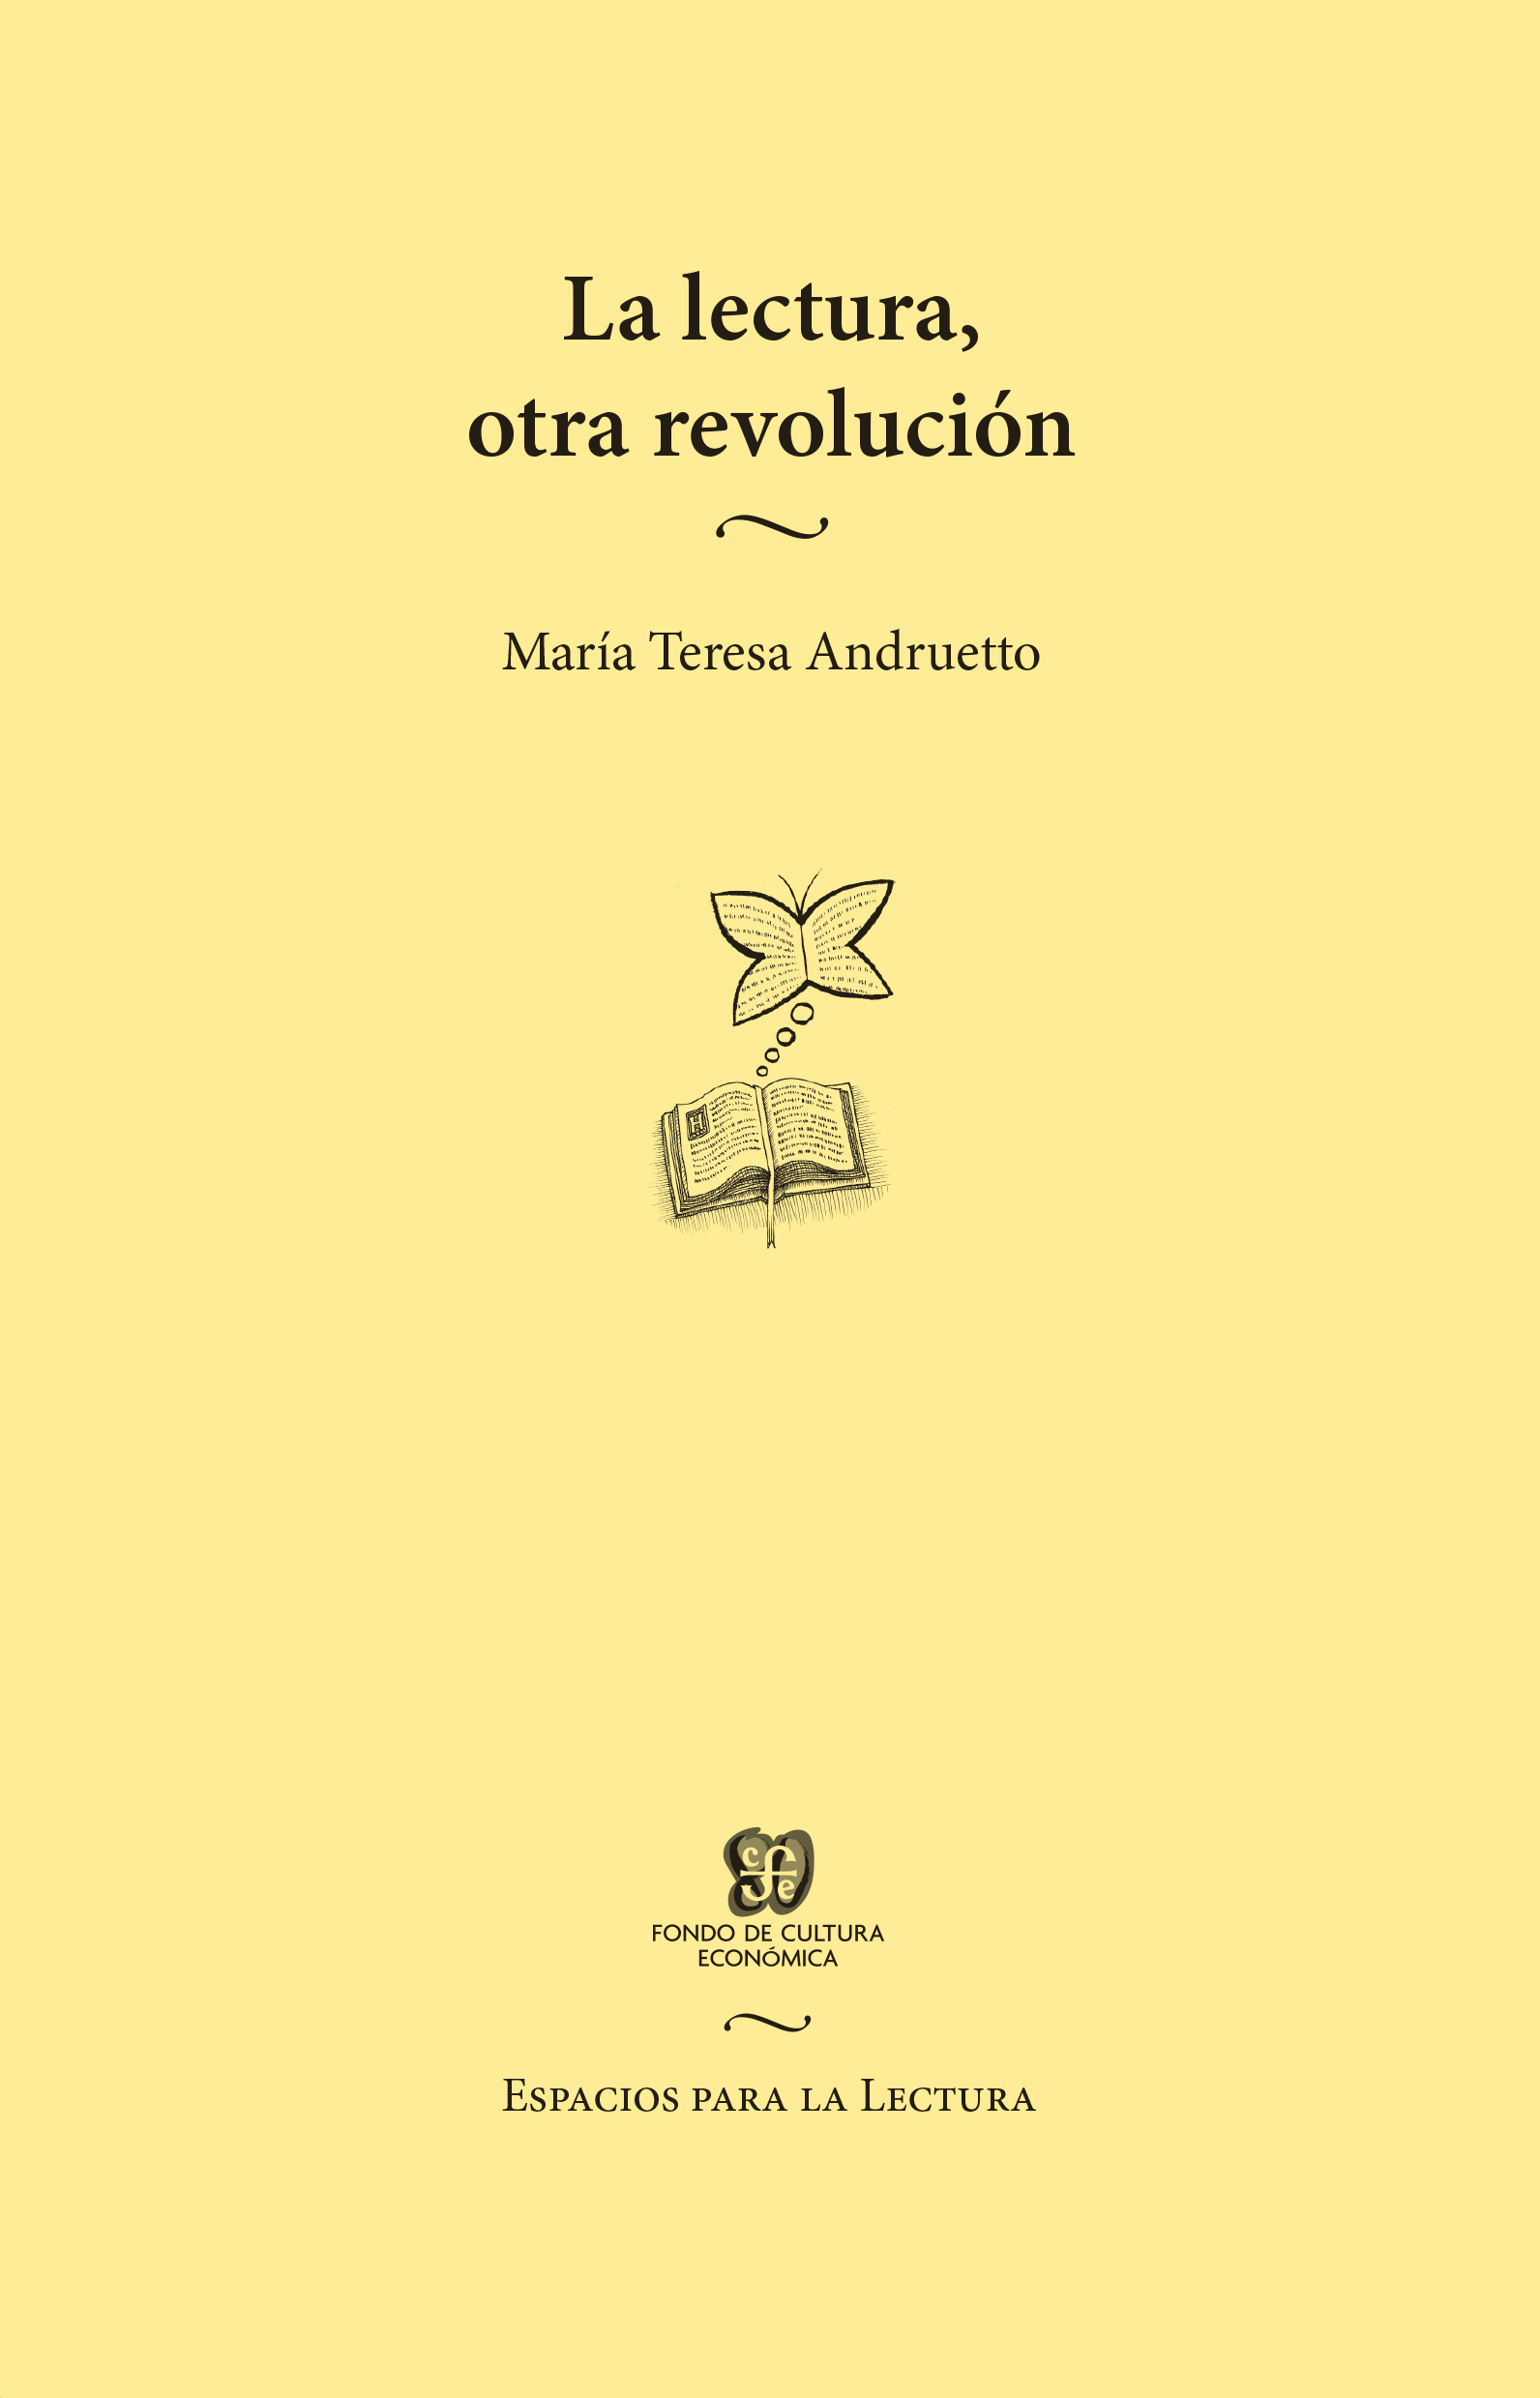 Reading, another revolution (La lectura, otra revolución)